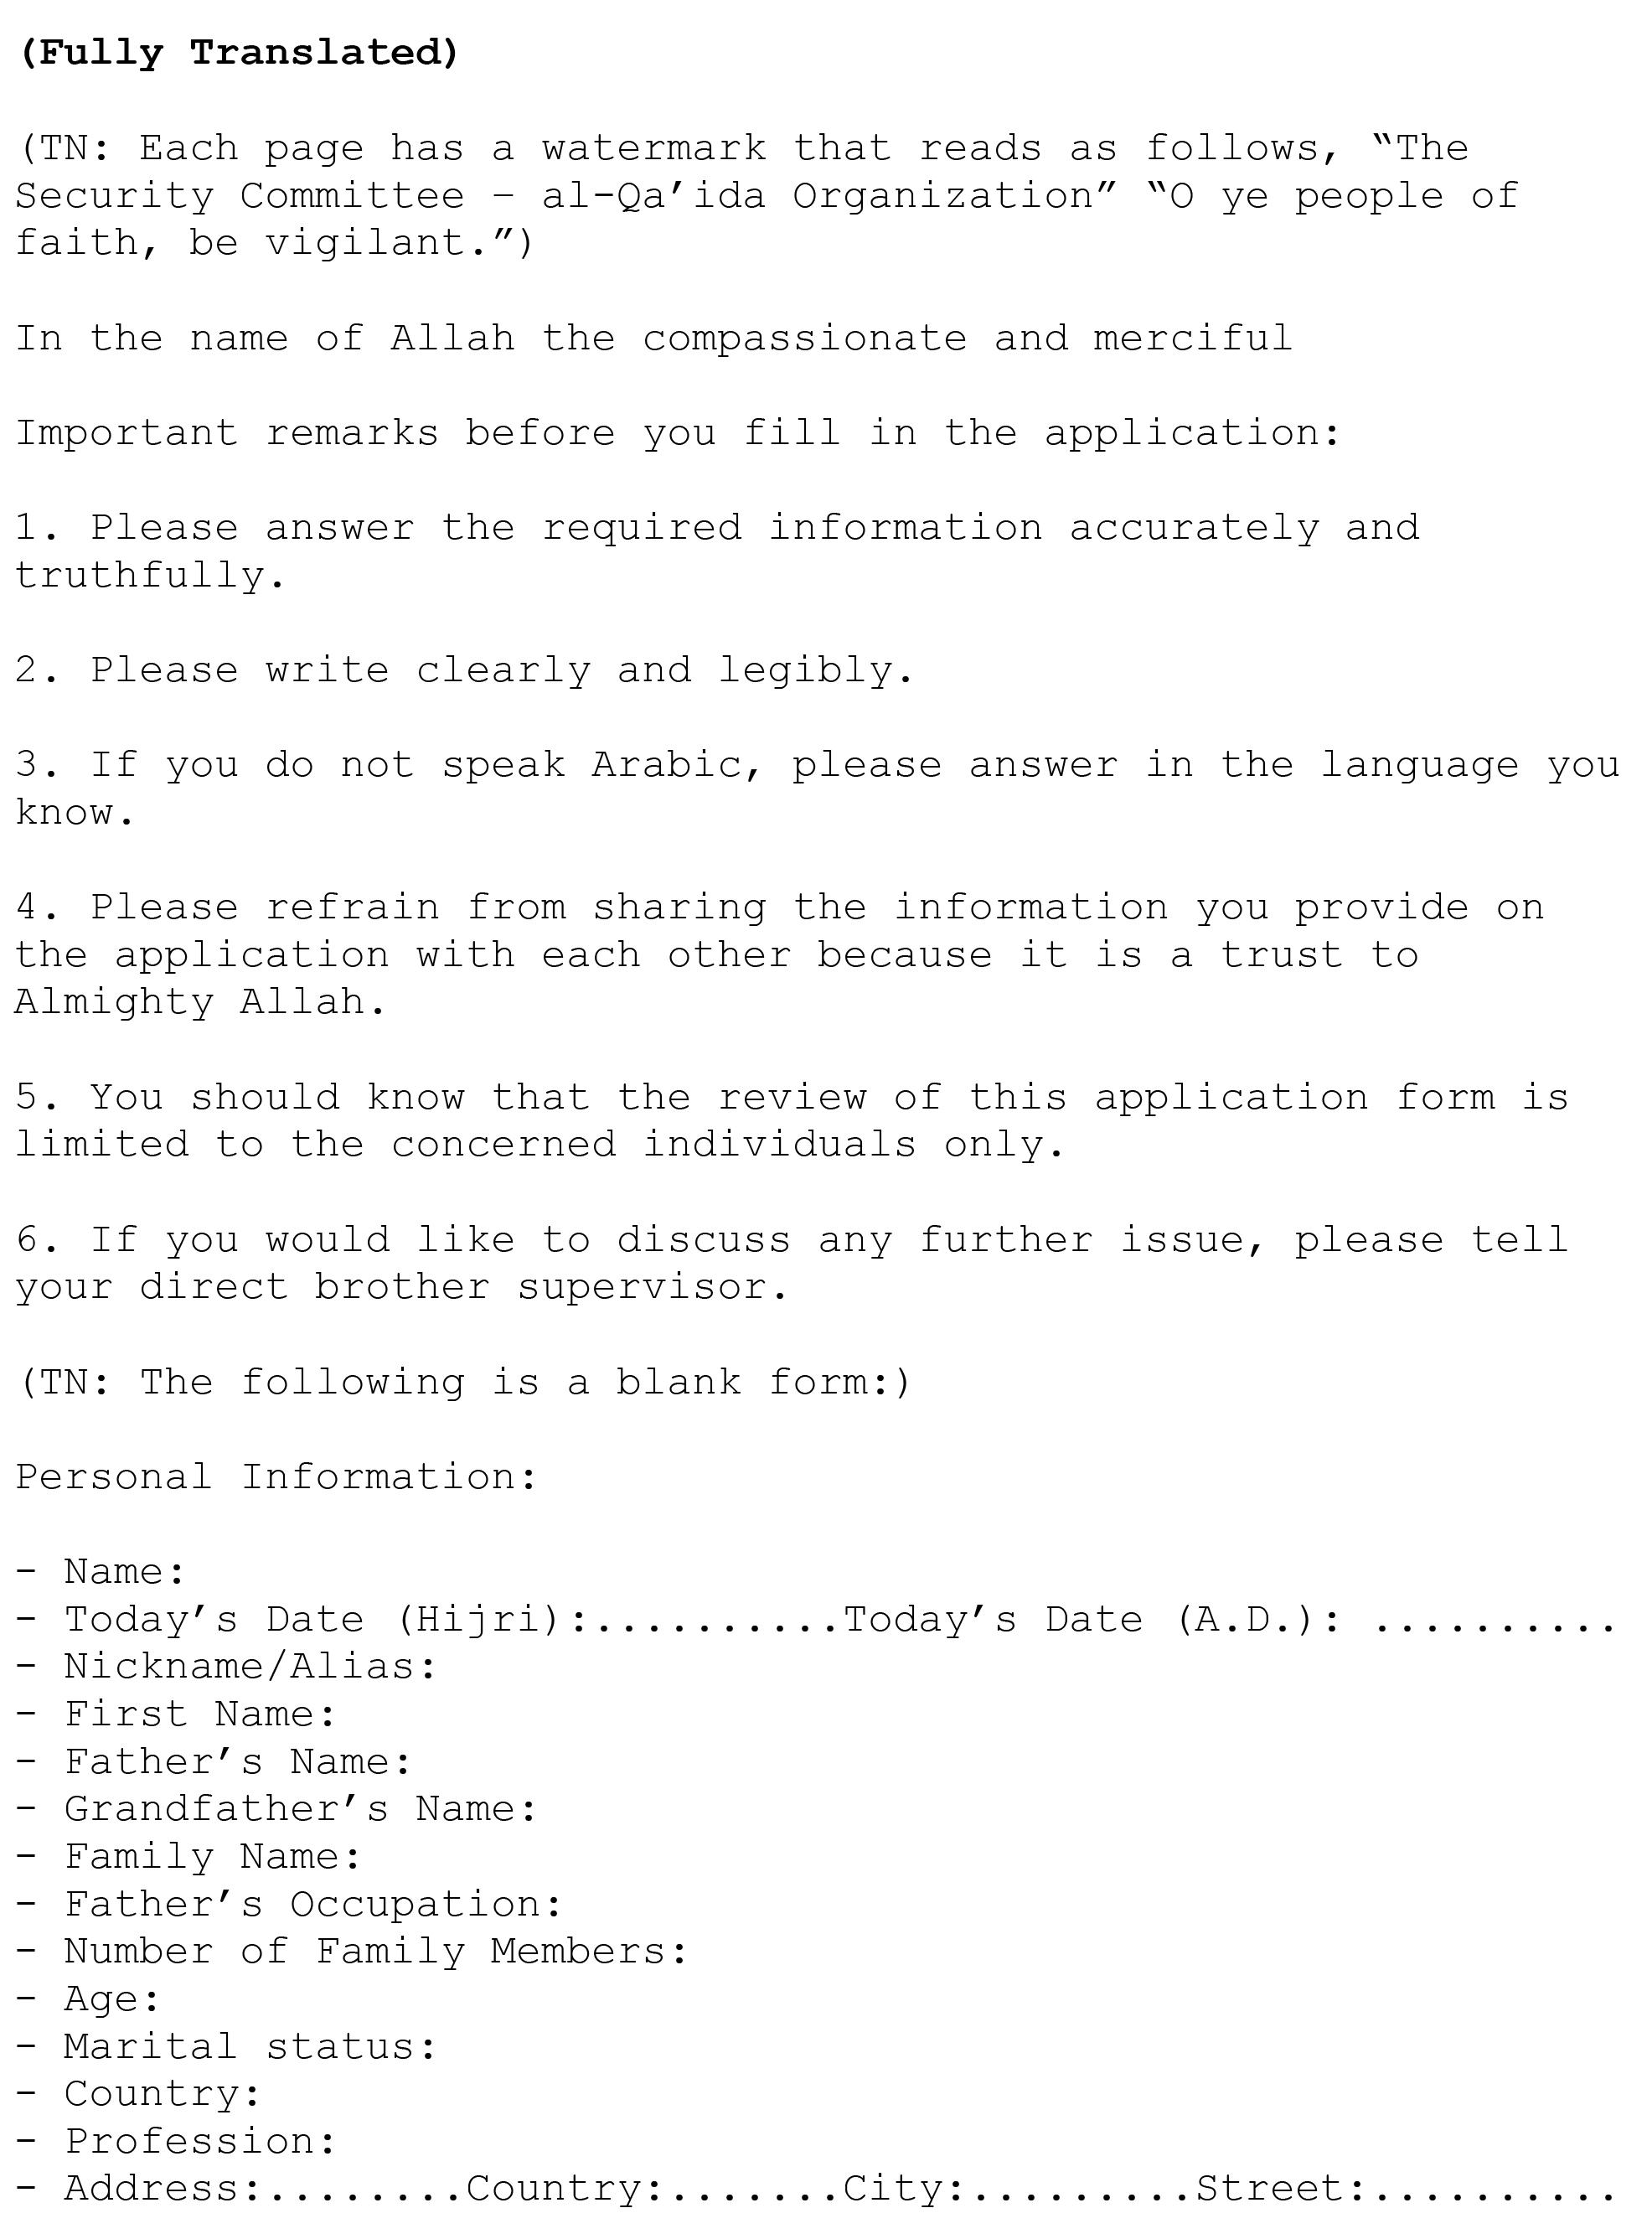 Ever Wondered What An Al Qaeda Job Application Form Looks Like? instructions to applicants 1